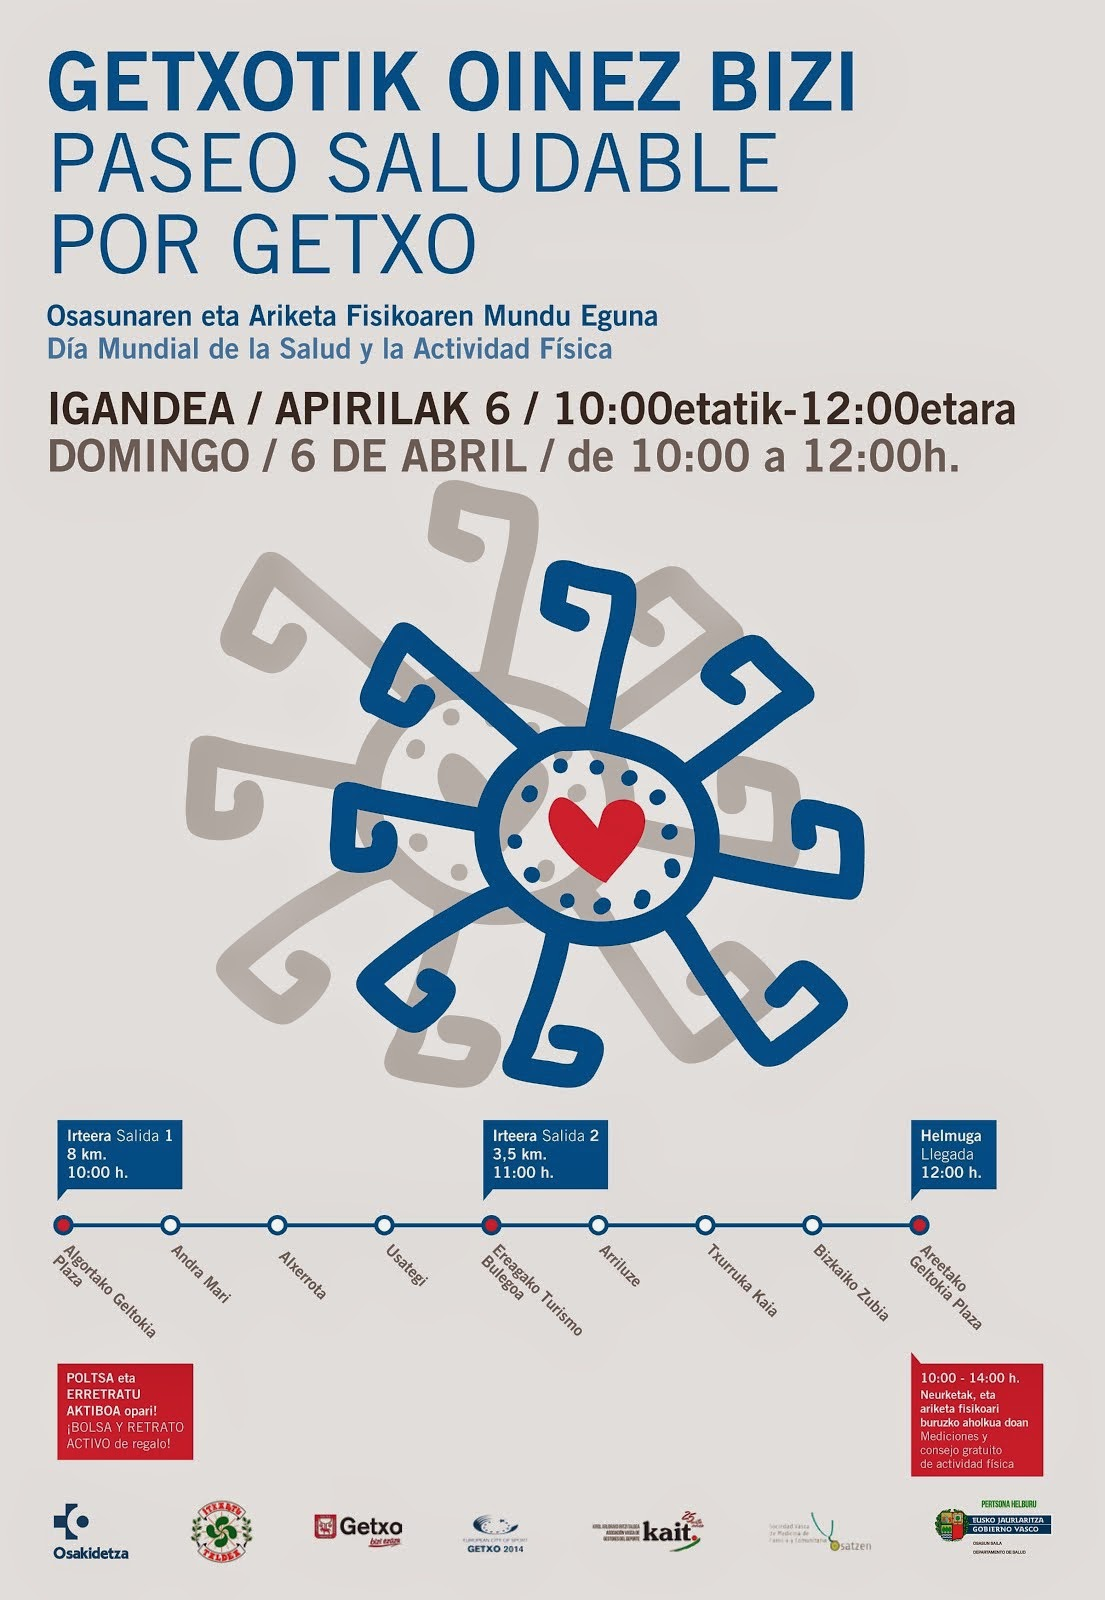 DOMINGO 6 DE ABRIL DE 2014. DE 10H A 12H